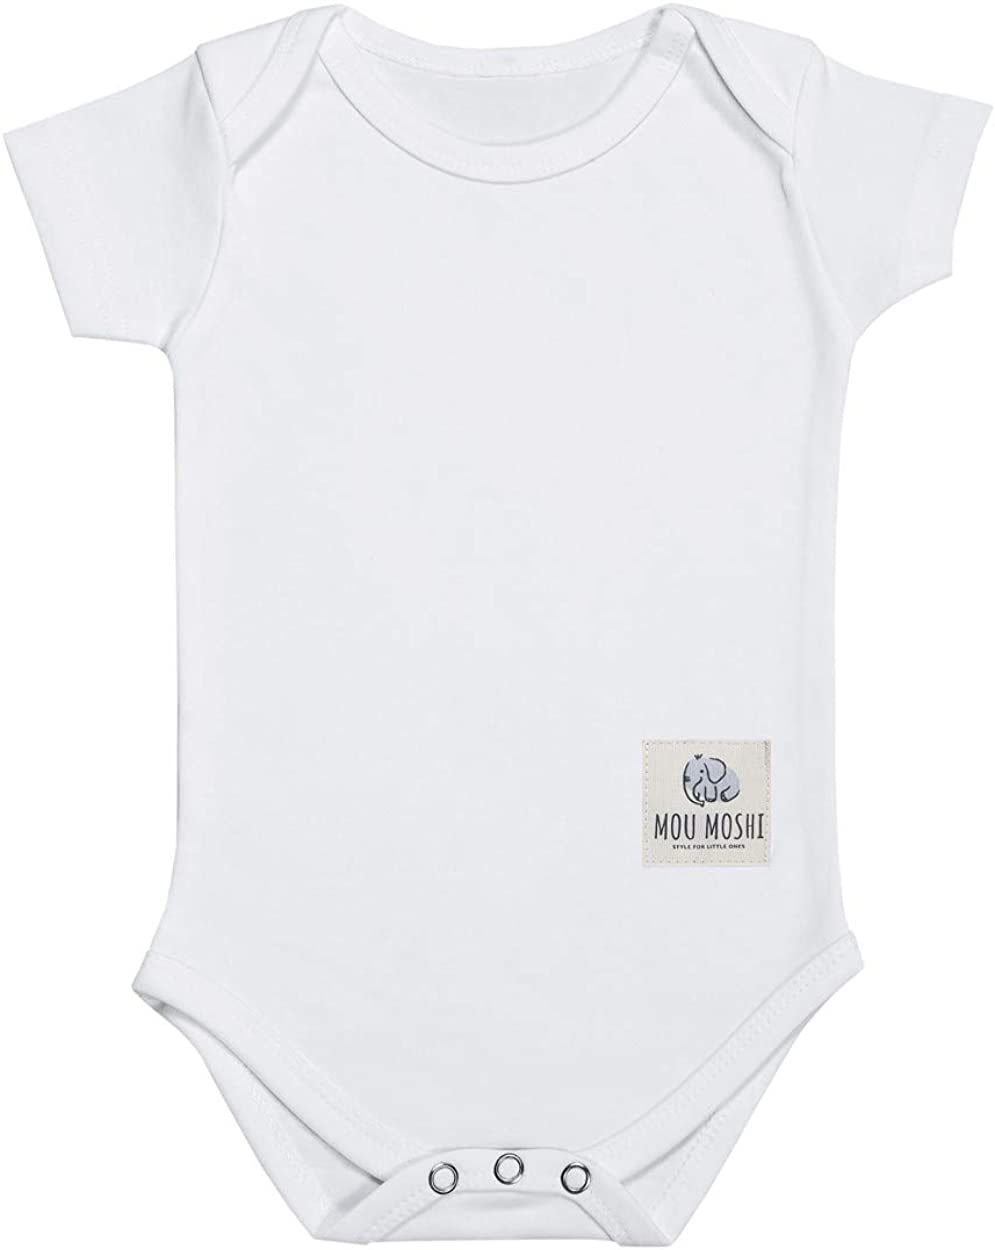 Mou Moshi Organic Cotton 18-24 Mounts Short-Sleeved Babygro White